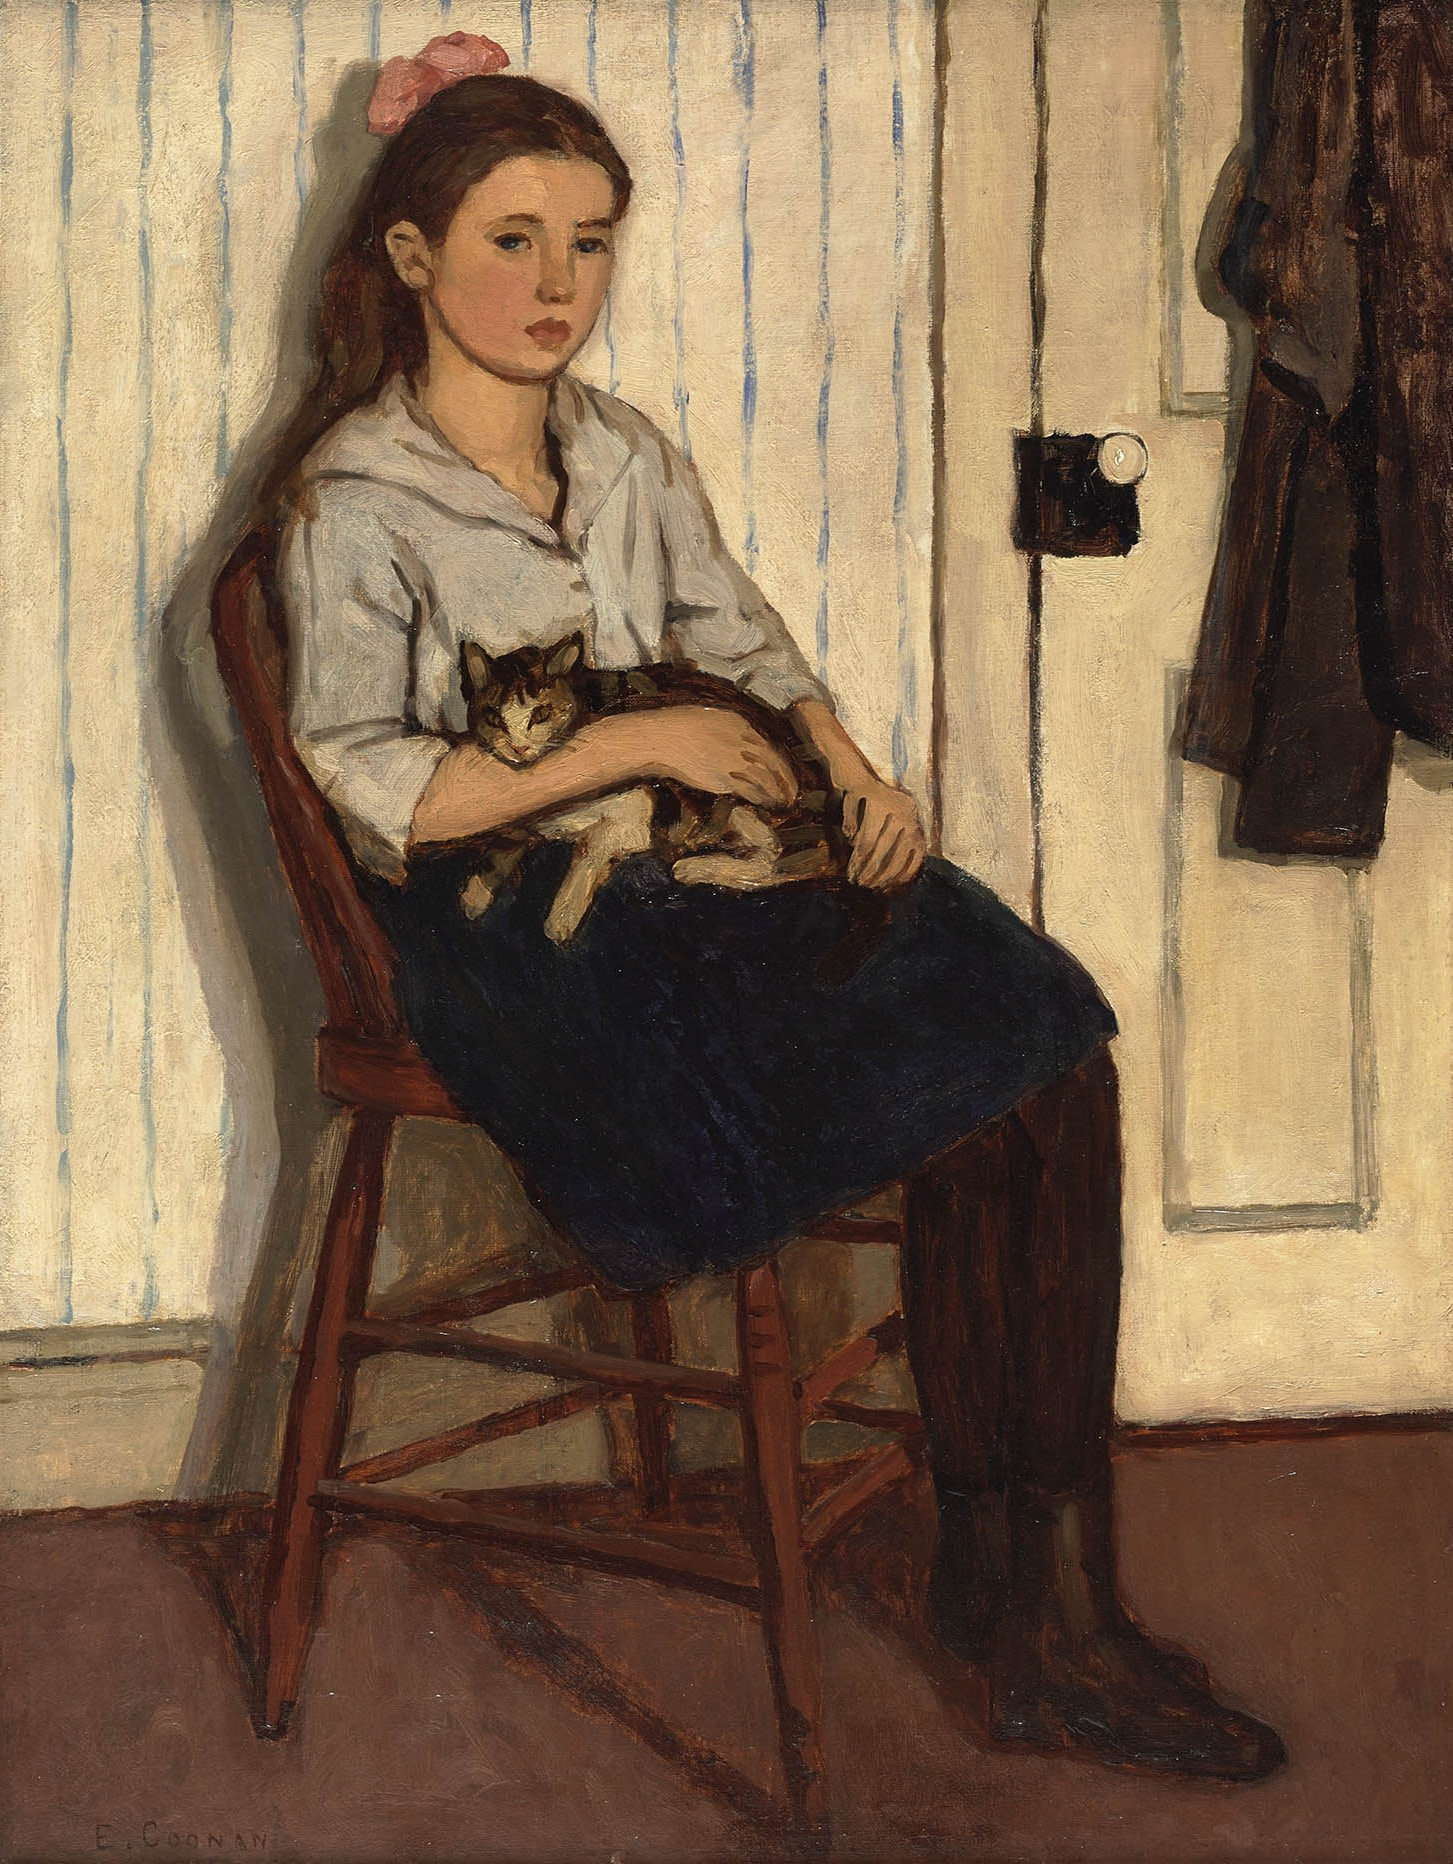 Emily Coonan, Girl and Cat, 1920 Oil on canvas, 28 x 22 in (71.1 x 55.9) Previously sold by Alan Klinkhoff Gallery, purchased in 2014 by the National Gallery of Canada, 46231